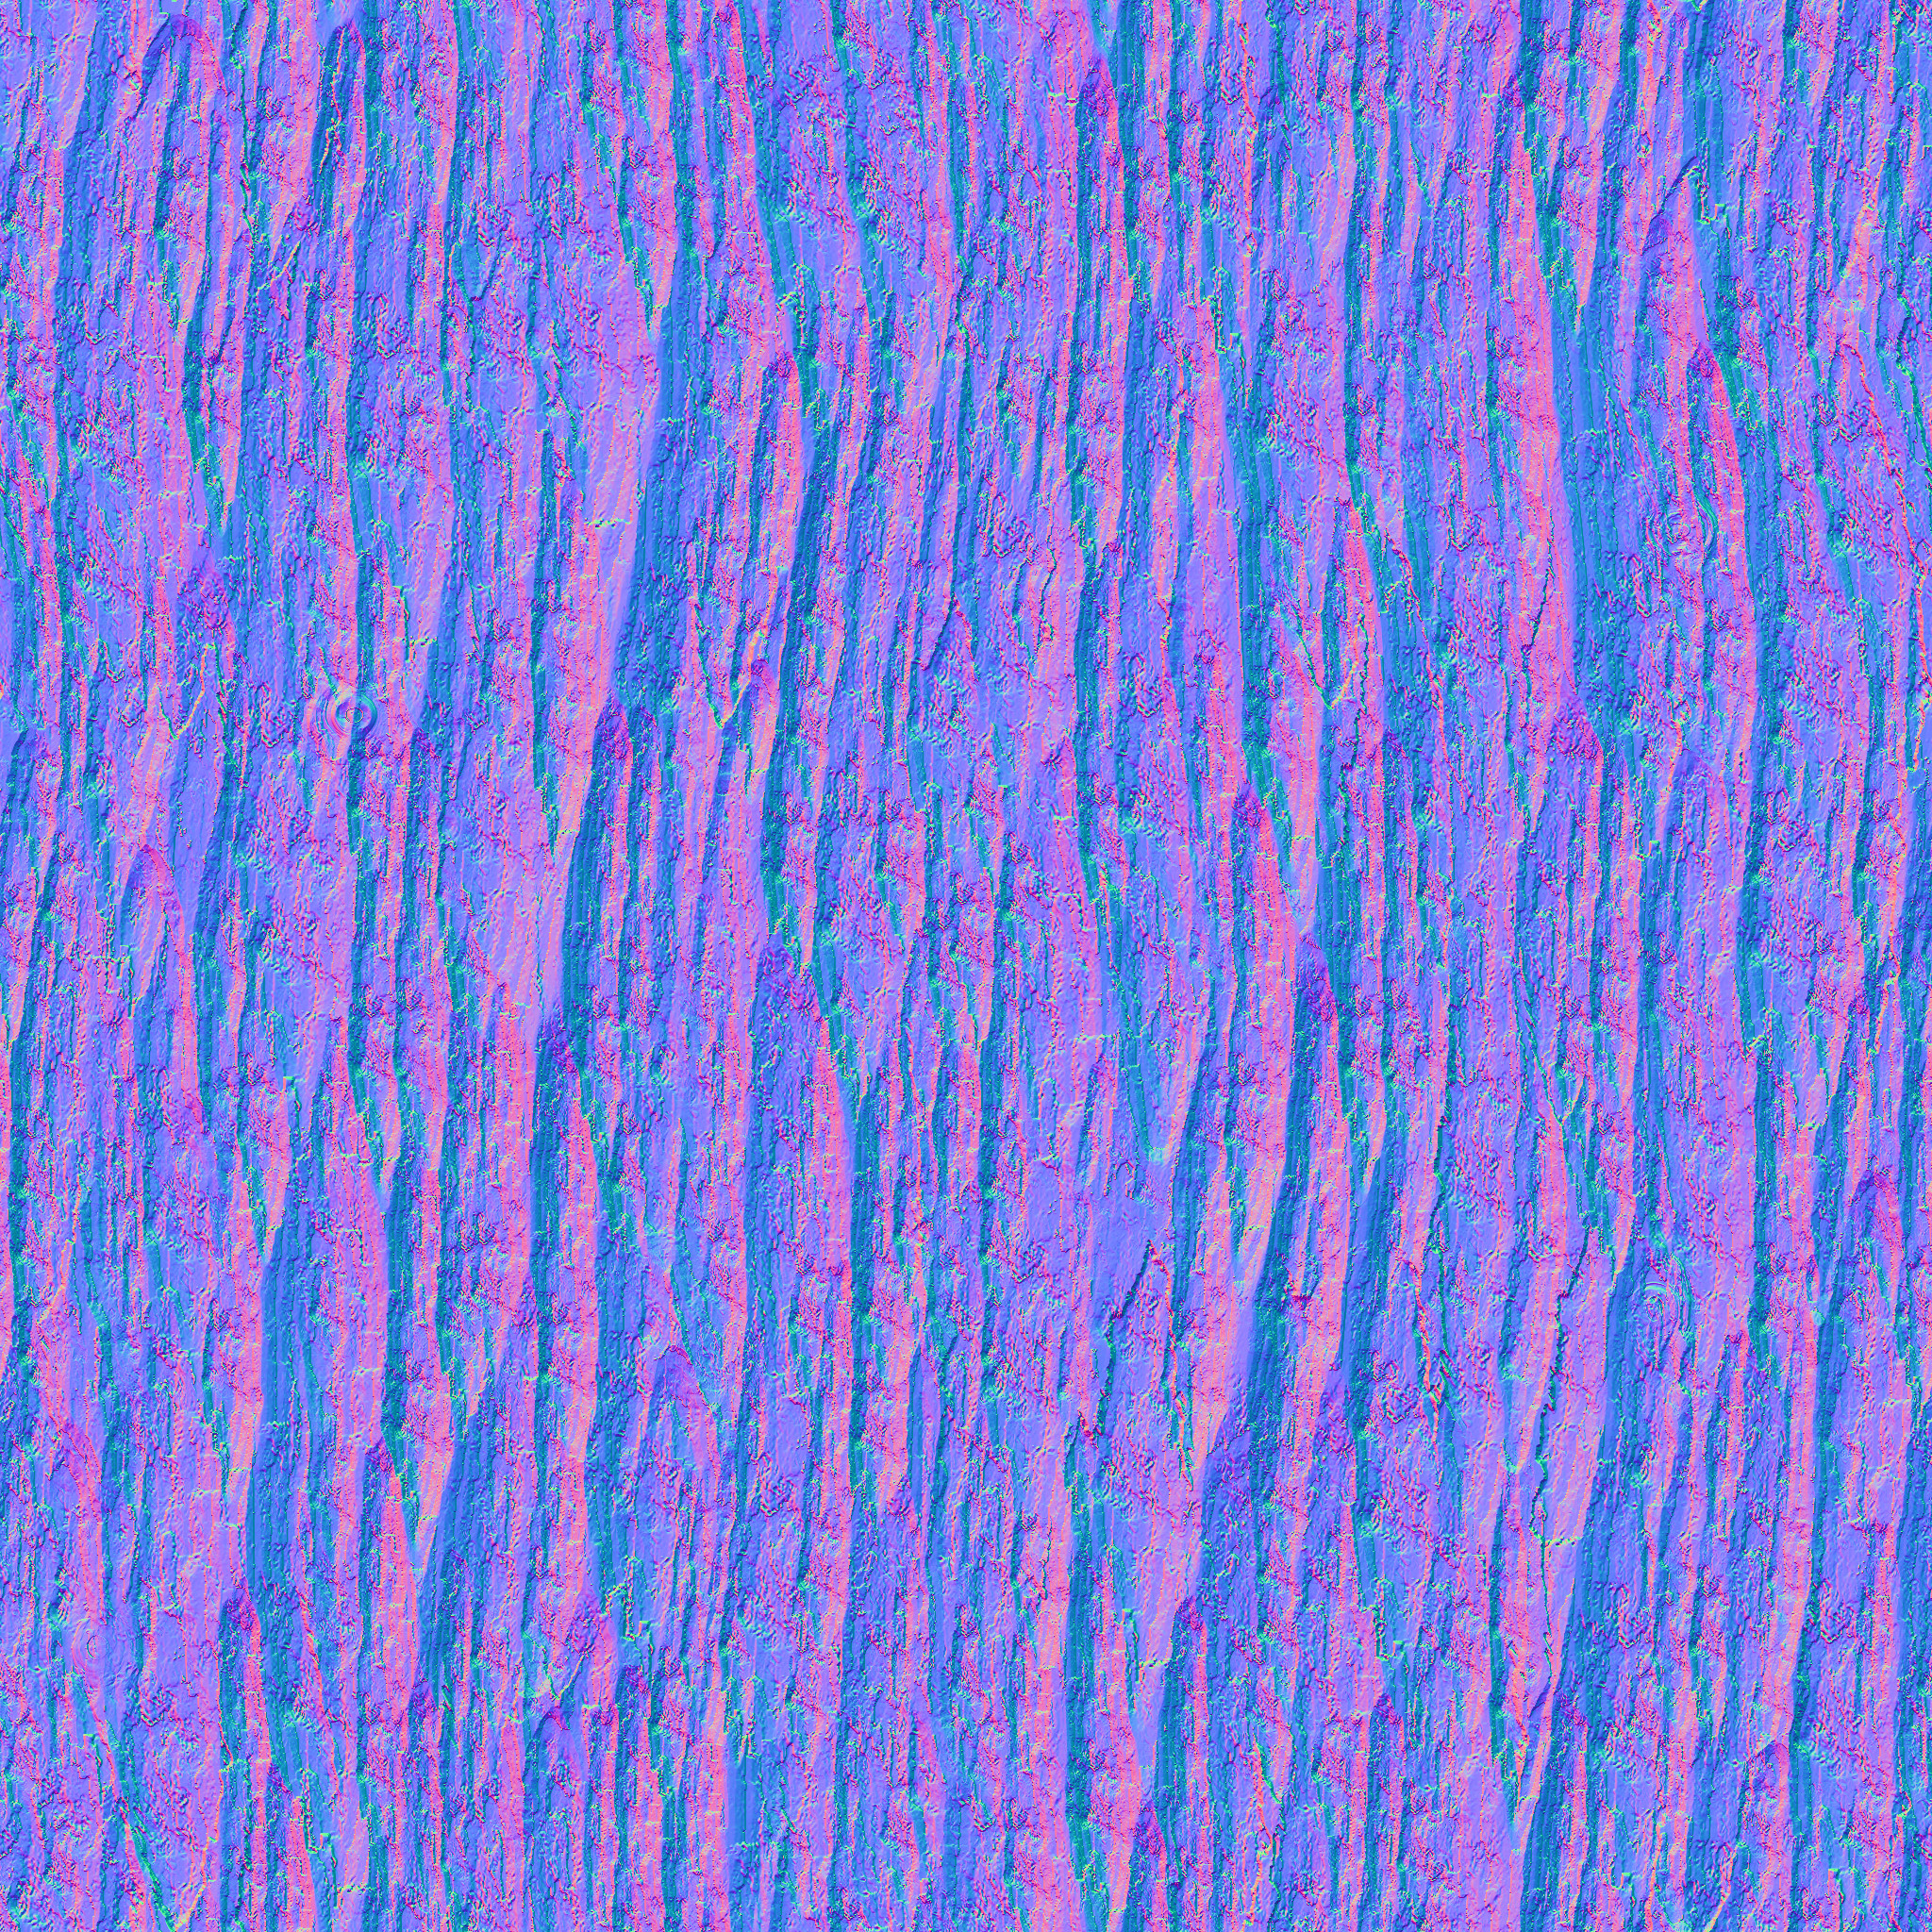 Normal map for the bark